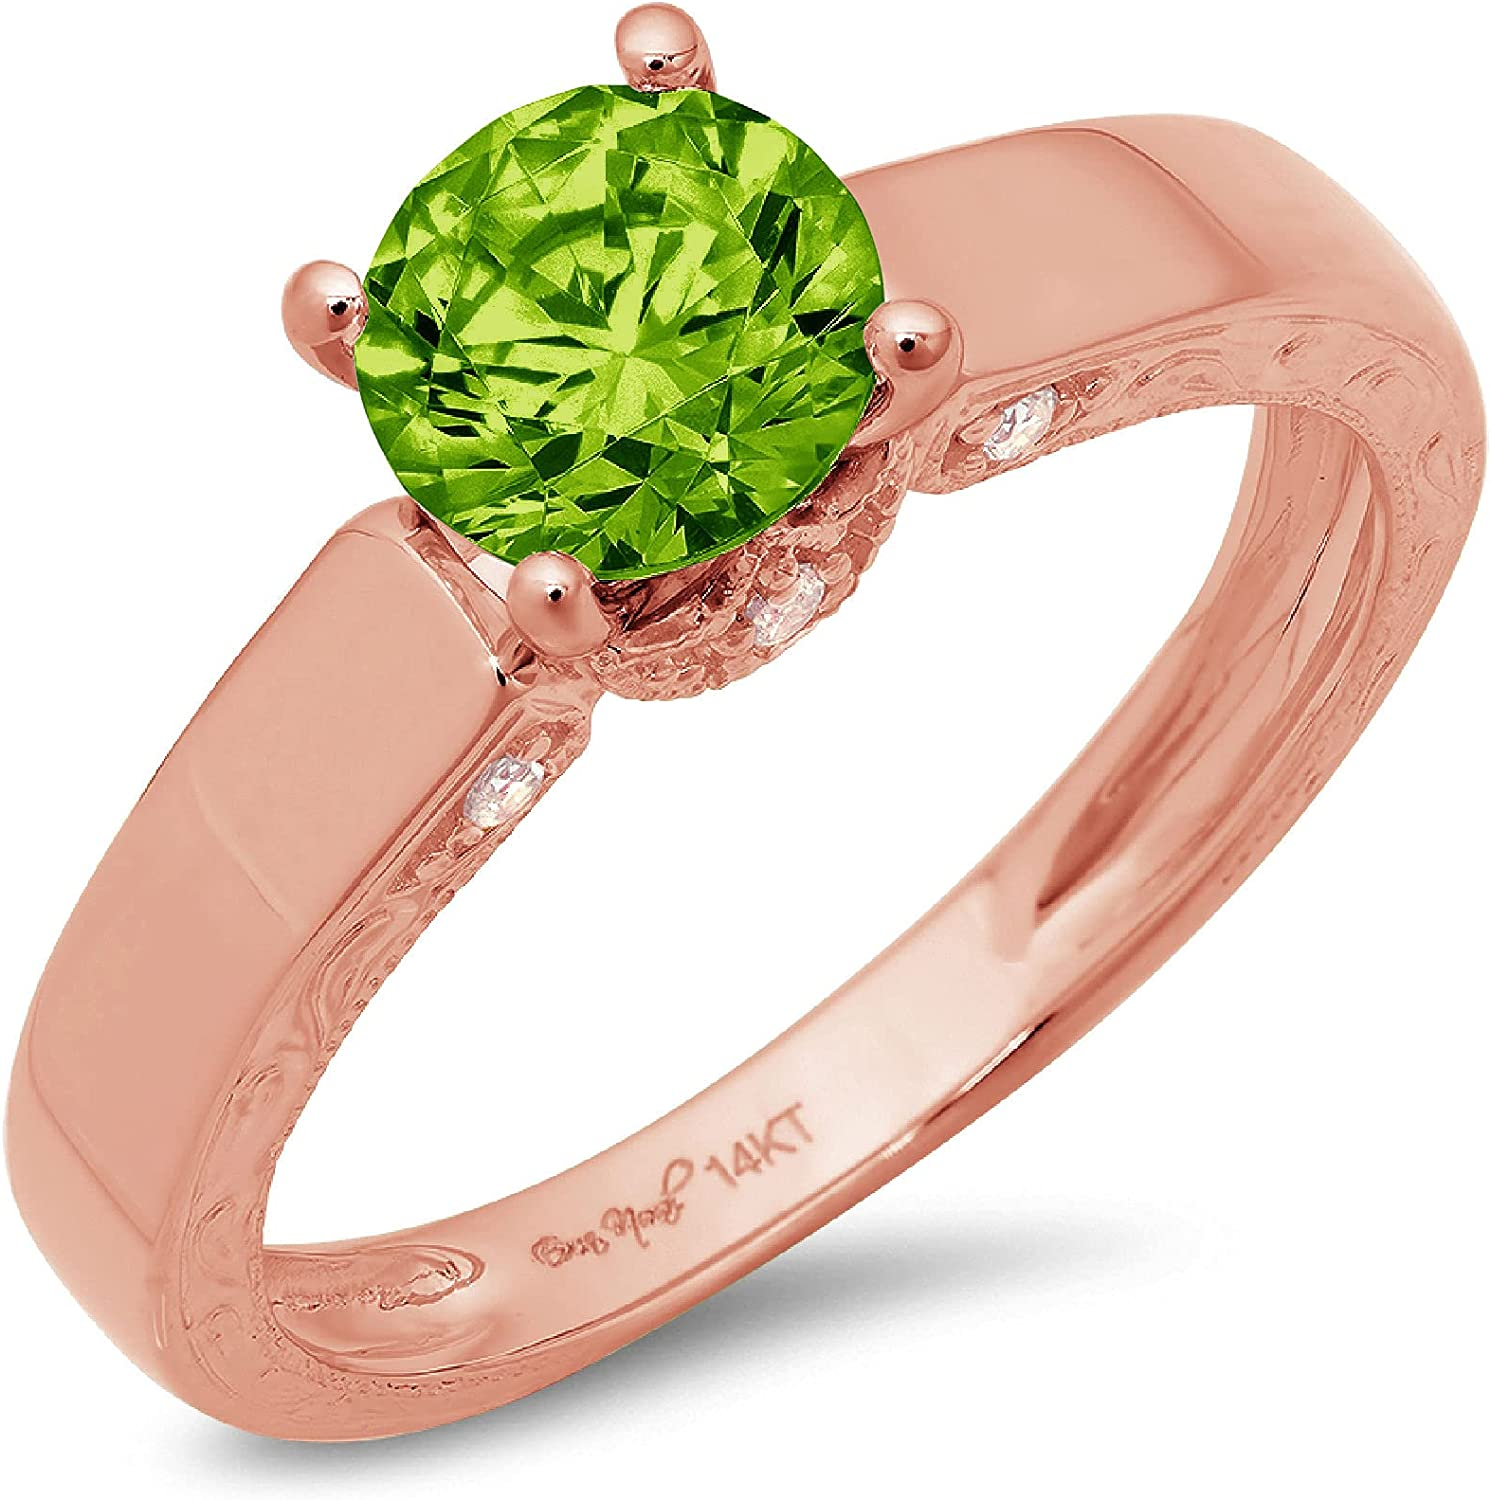 1.67ct Brilliant Round Cut Solitaire Flawless Genuine Natural Pure Green Peridot Gemstone VVS1 Designer Modern Statement with accent Ring Solid 14k Rose Pink Gold